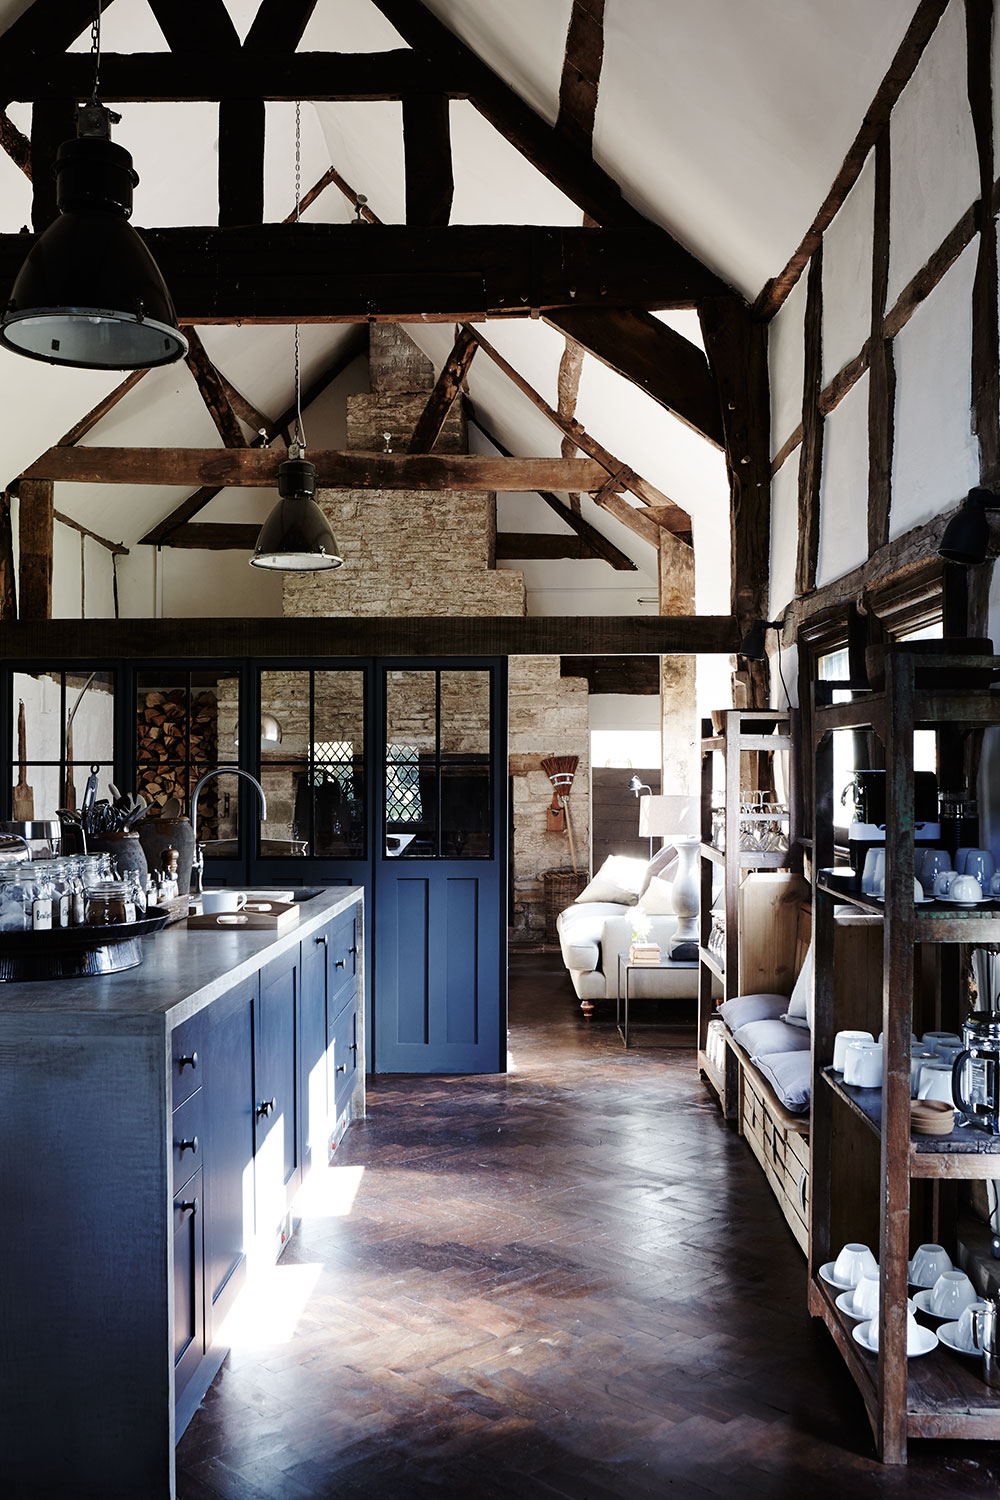 Tudor_rustic_kitchen.jpg